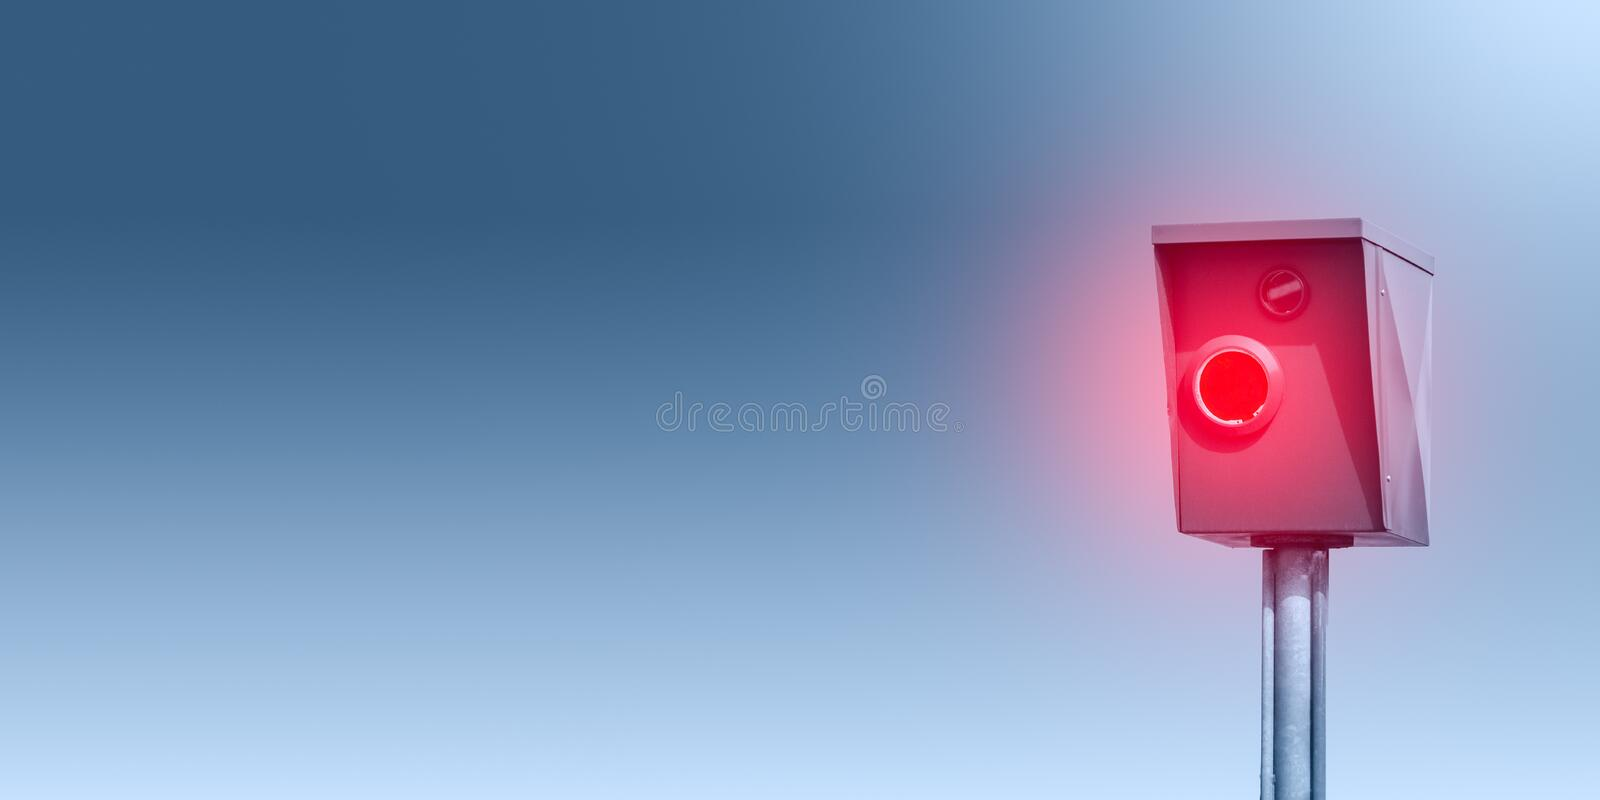 A typical radar trap, speed trap, speed camera in front of blue background - Banner stock photos